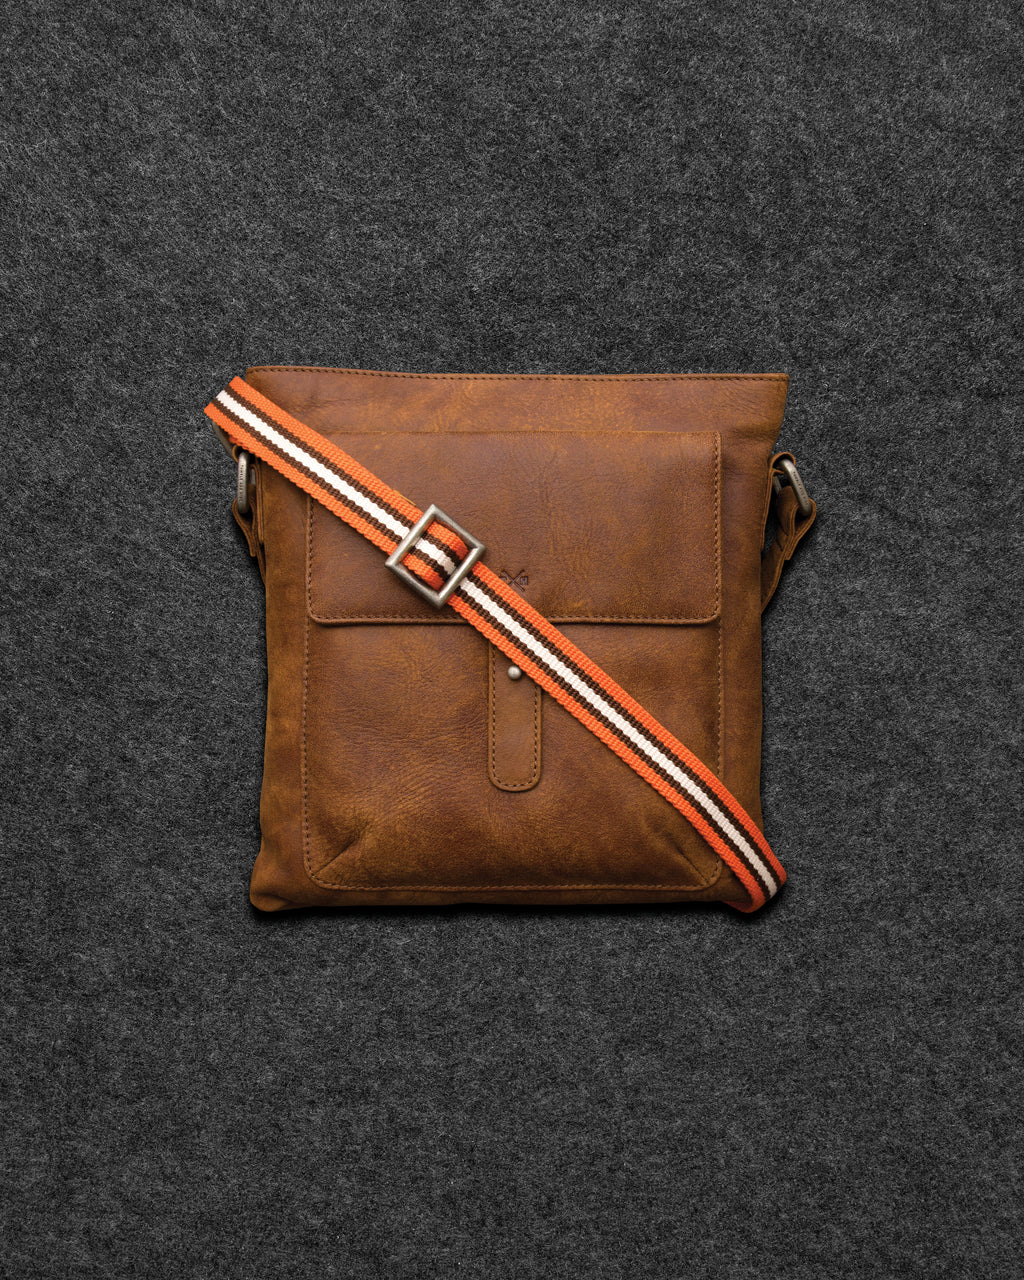 Yukon Leather Cross Body Bag